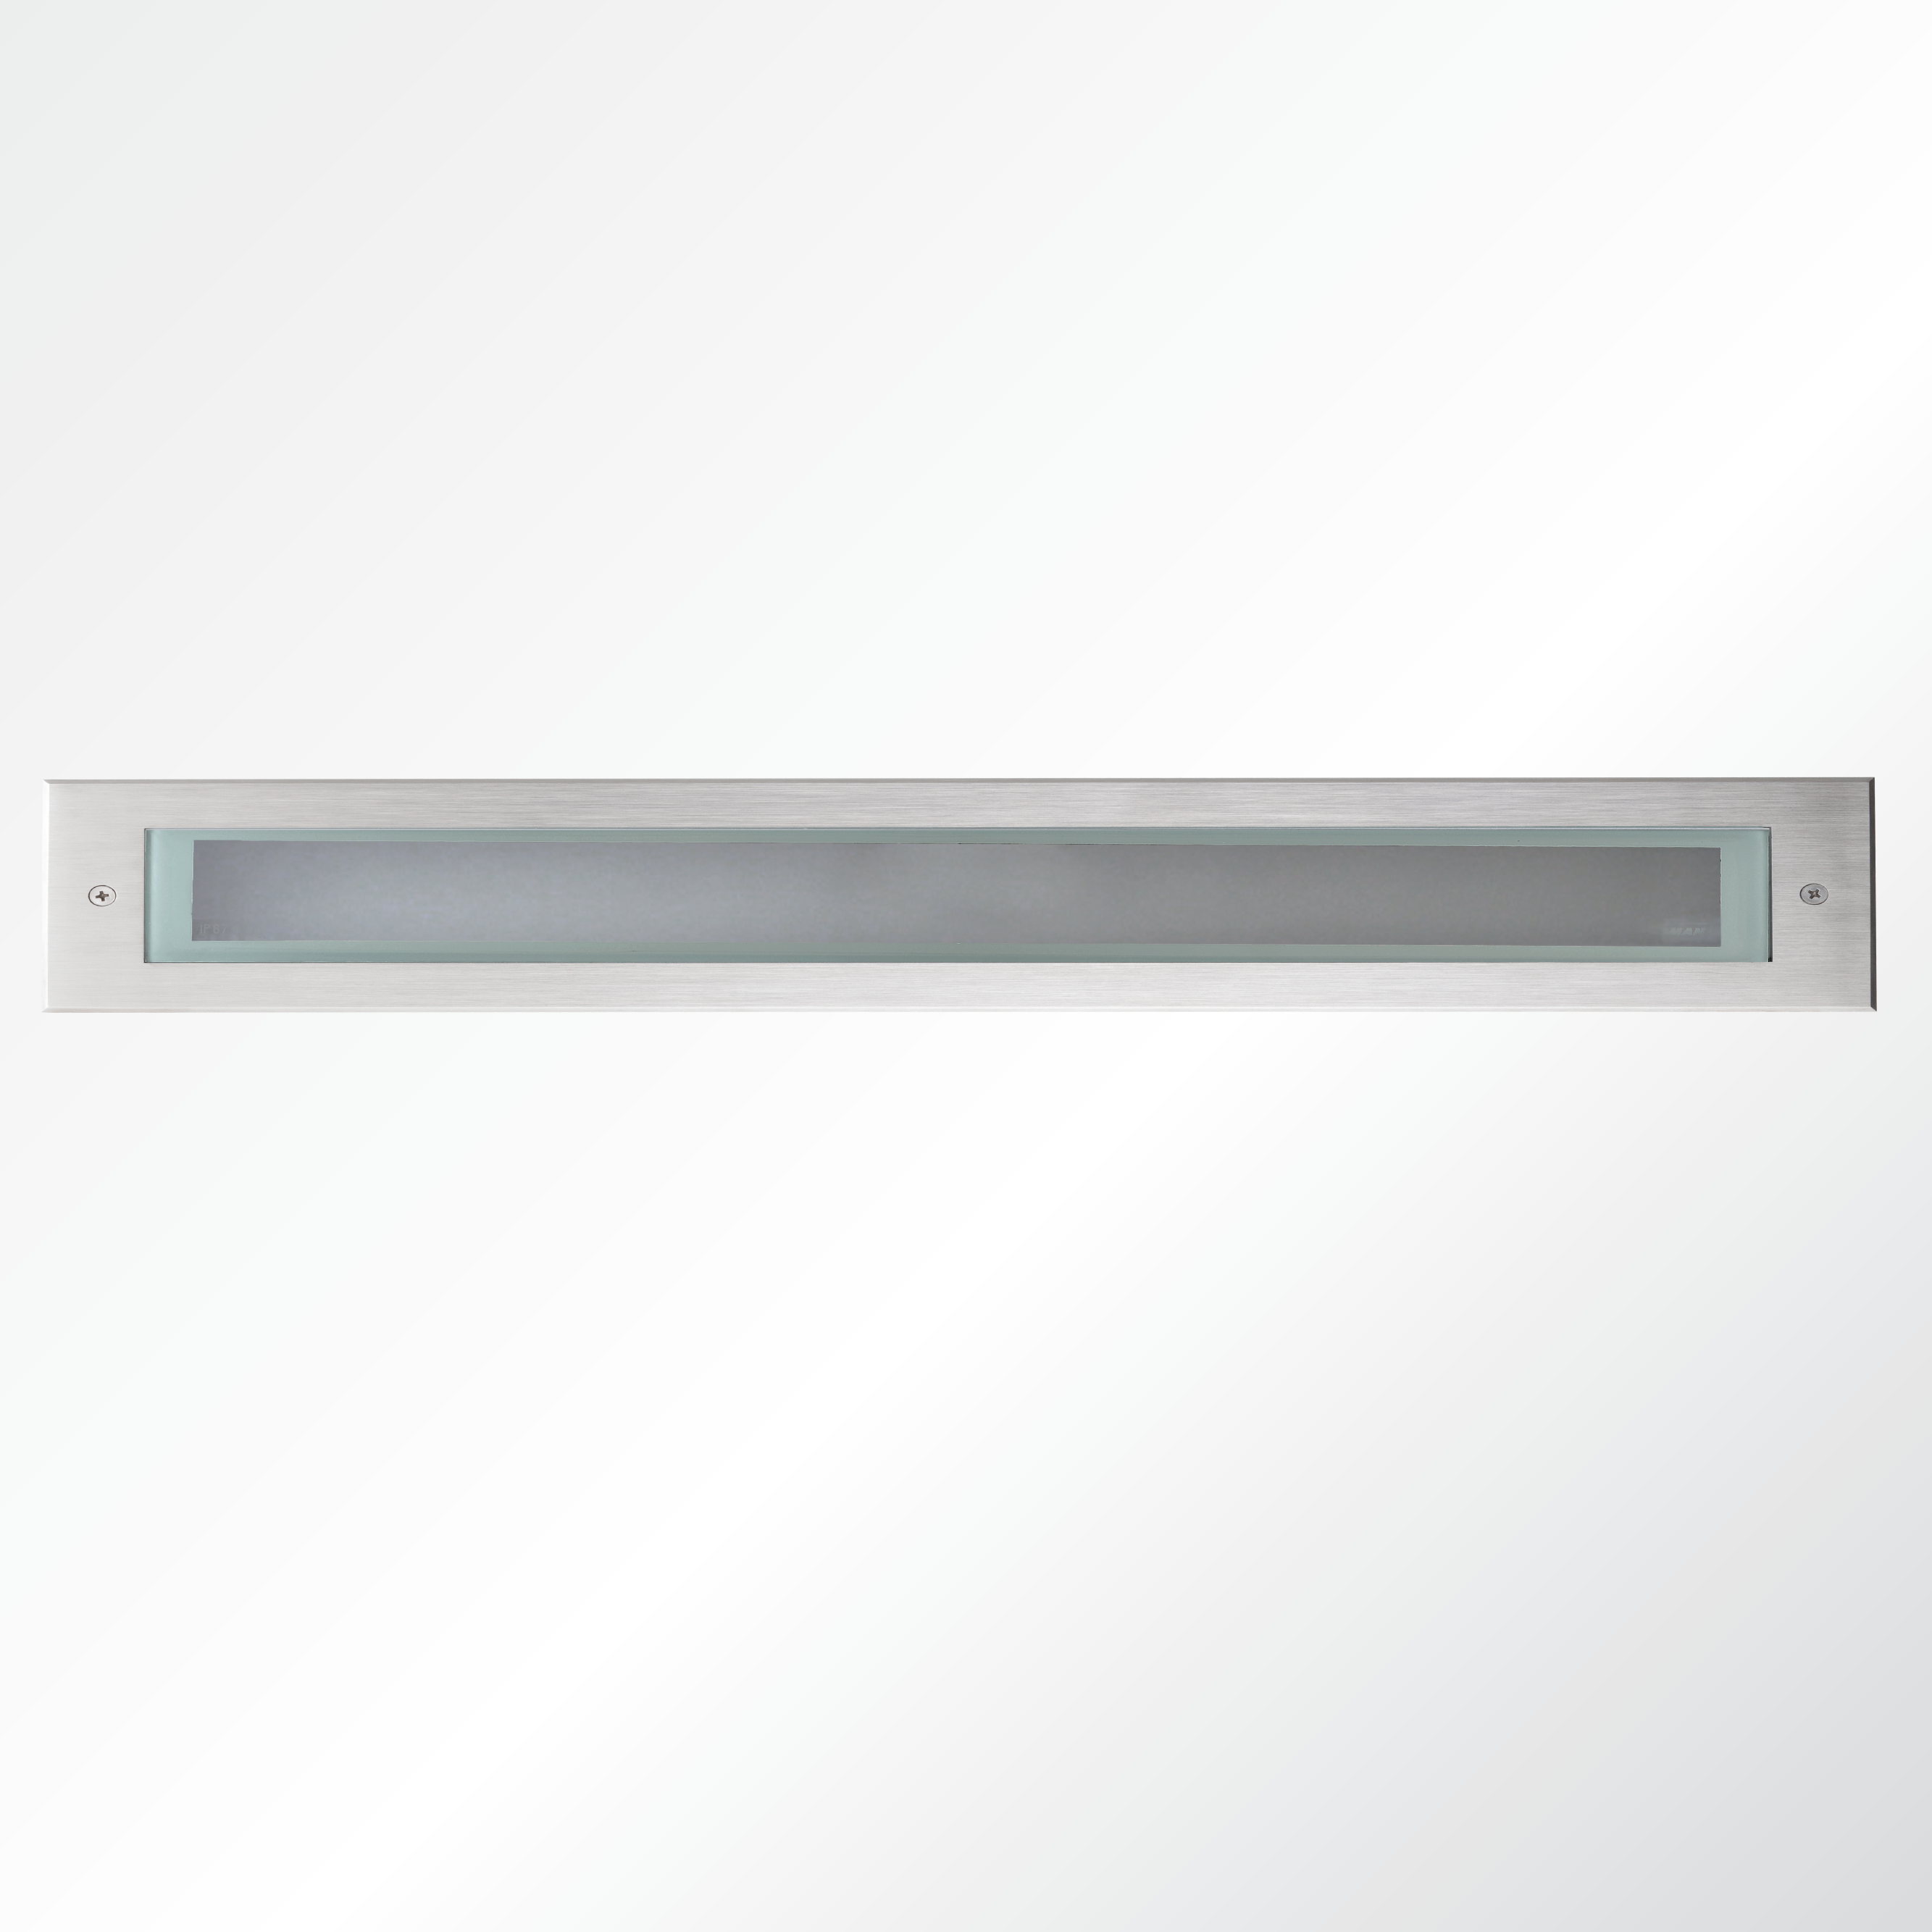 Recessed wall luminaires light linear recessed wall light led luminaire www Exterior linear led lighting